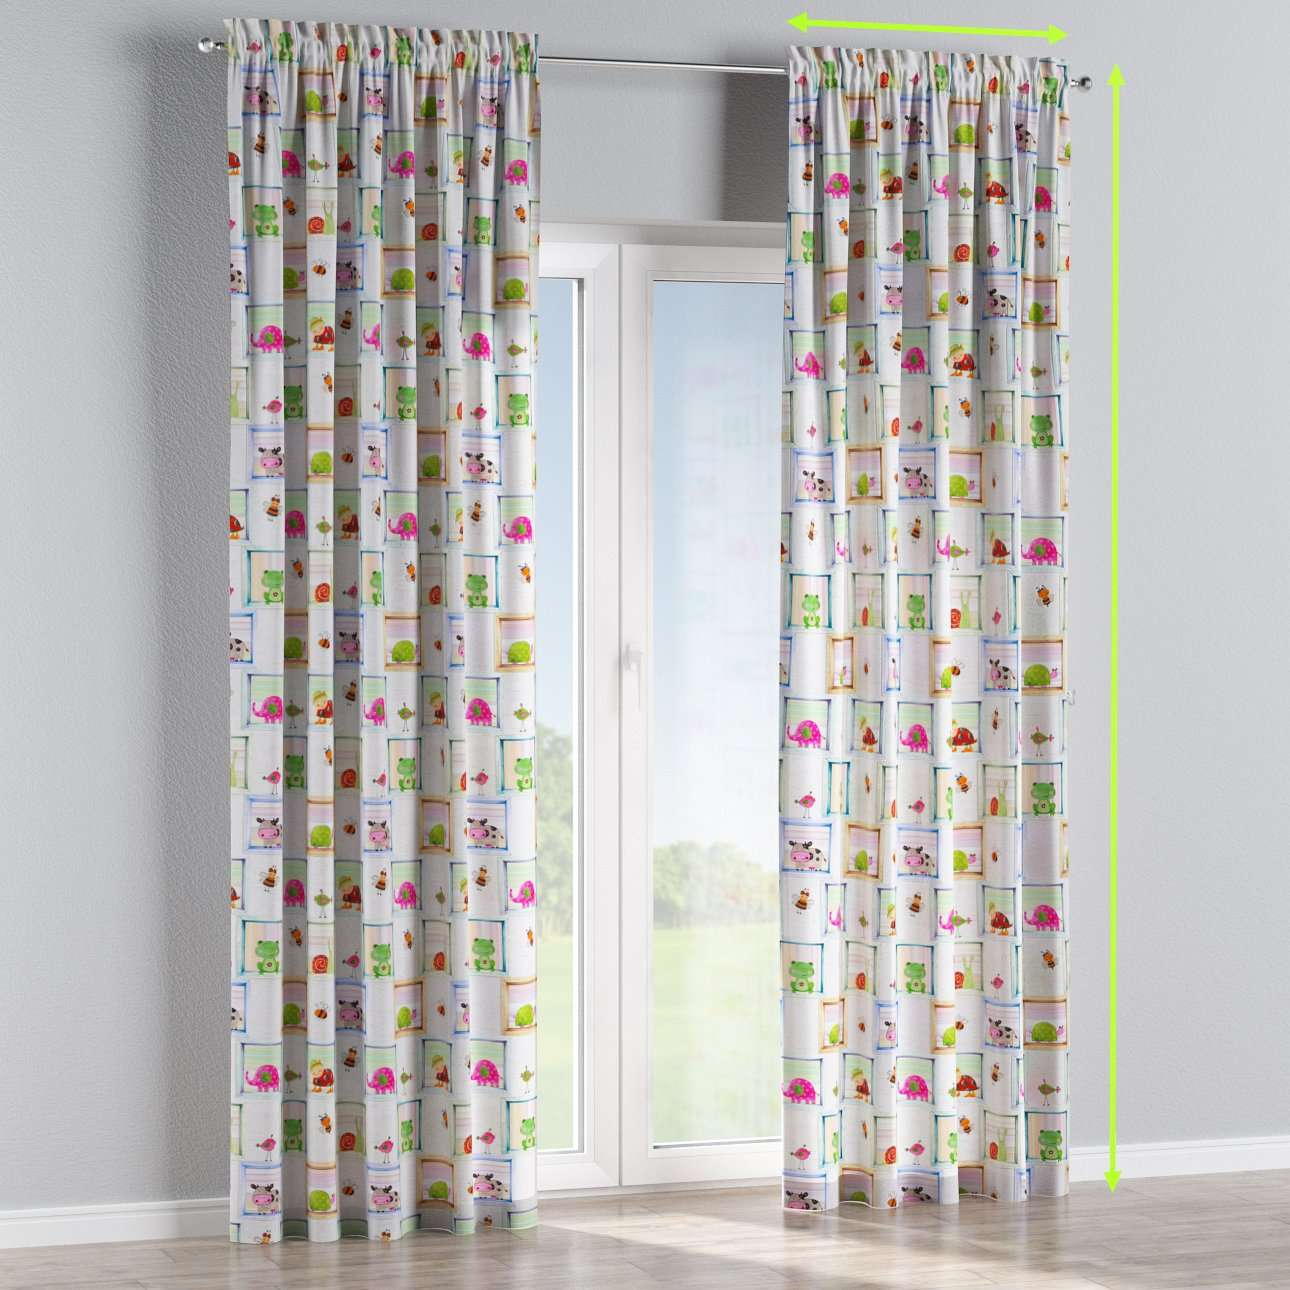 Slot and frill curtains in collection Apanona, fabric: 151-04